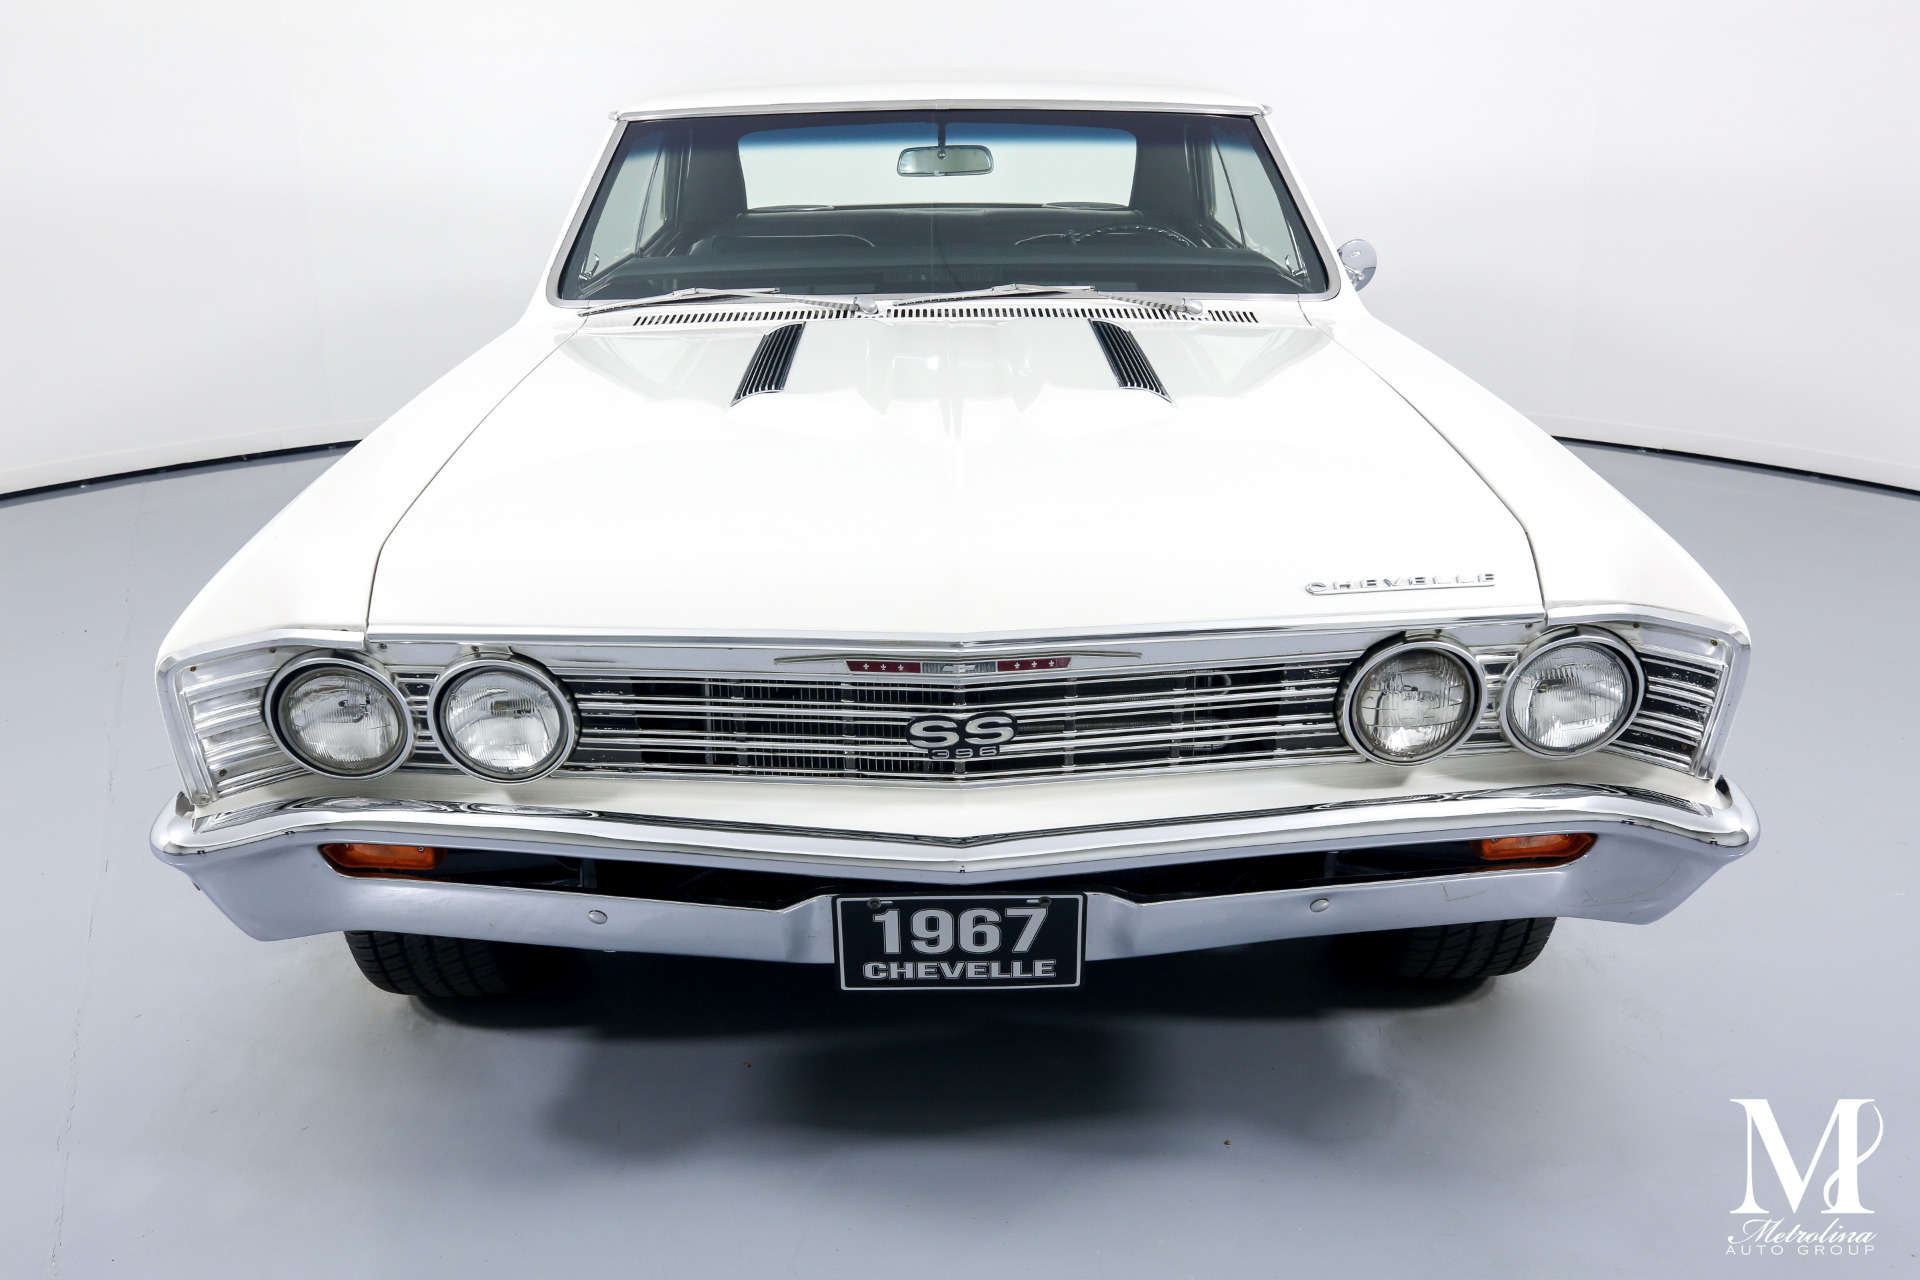 Used 1967 CHEVROLET SUPERSPORT 396 for sale $69,996 at Metrolina Auto Group in Charlotte NC 28217 - 3